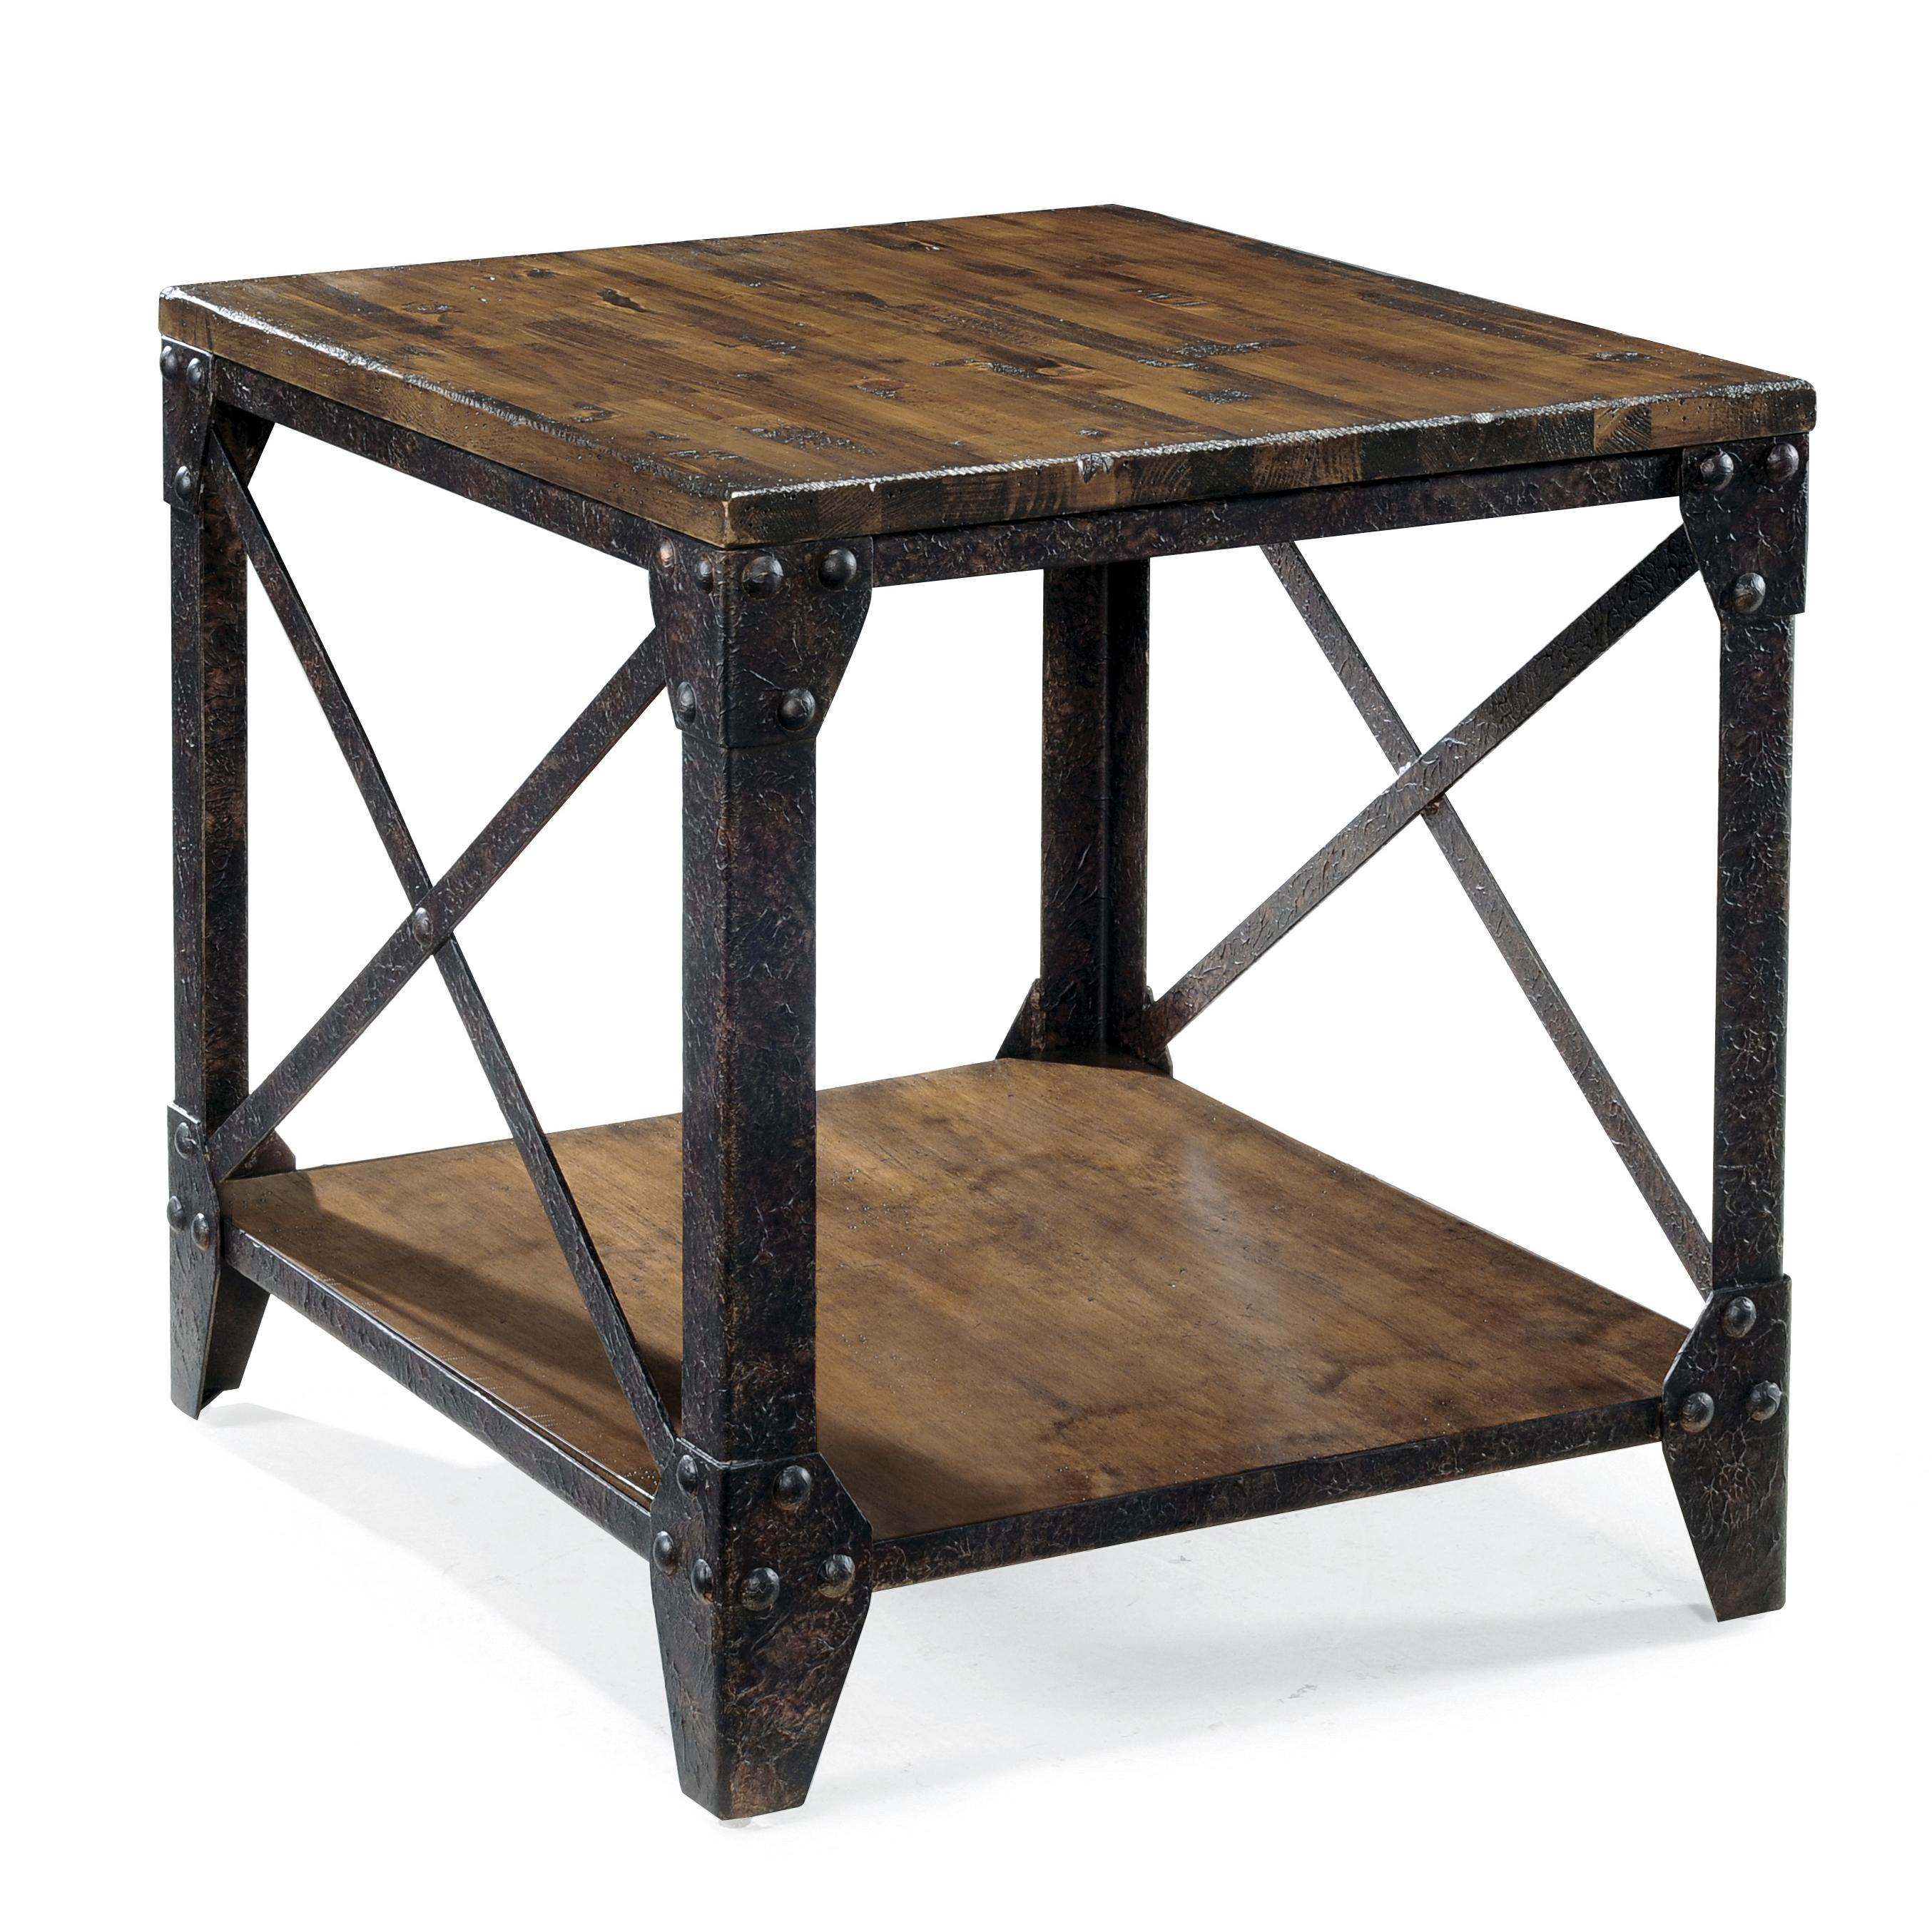 magnussen home pinebrook rectangular end table with rustic products color furniture tables iron legs solid oak storage coffee mosaic top patio side matching cast dining inch round